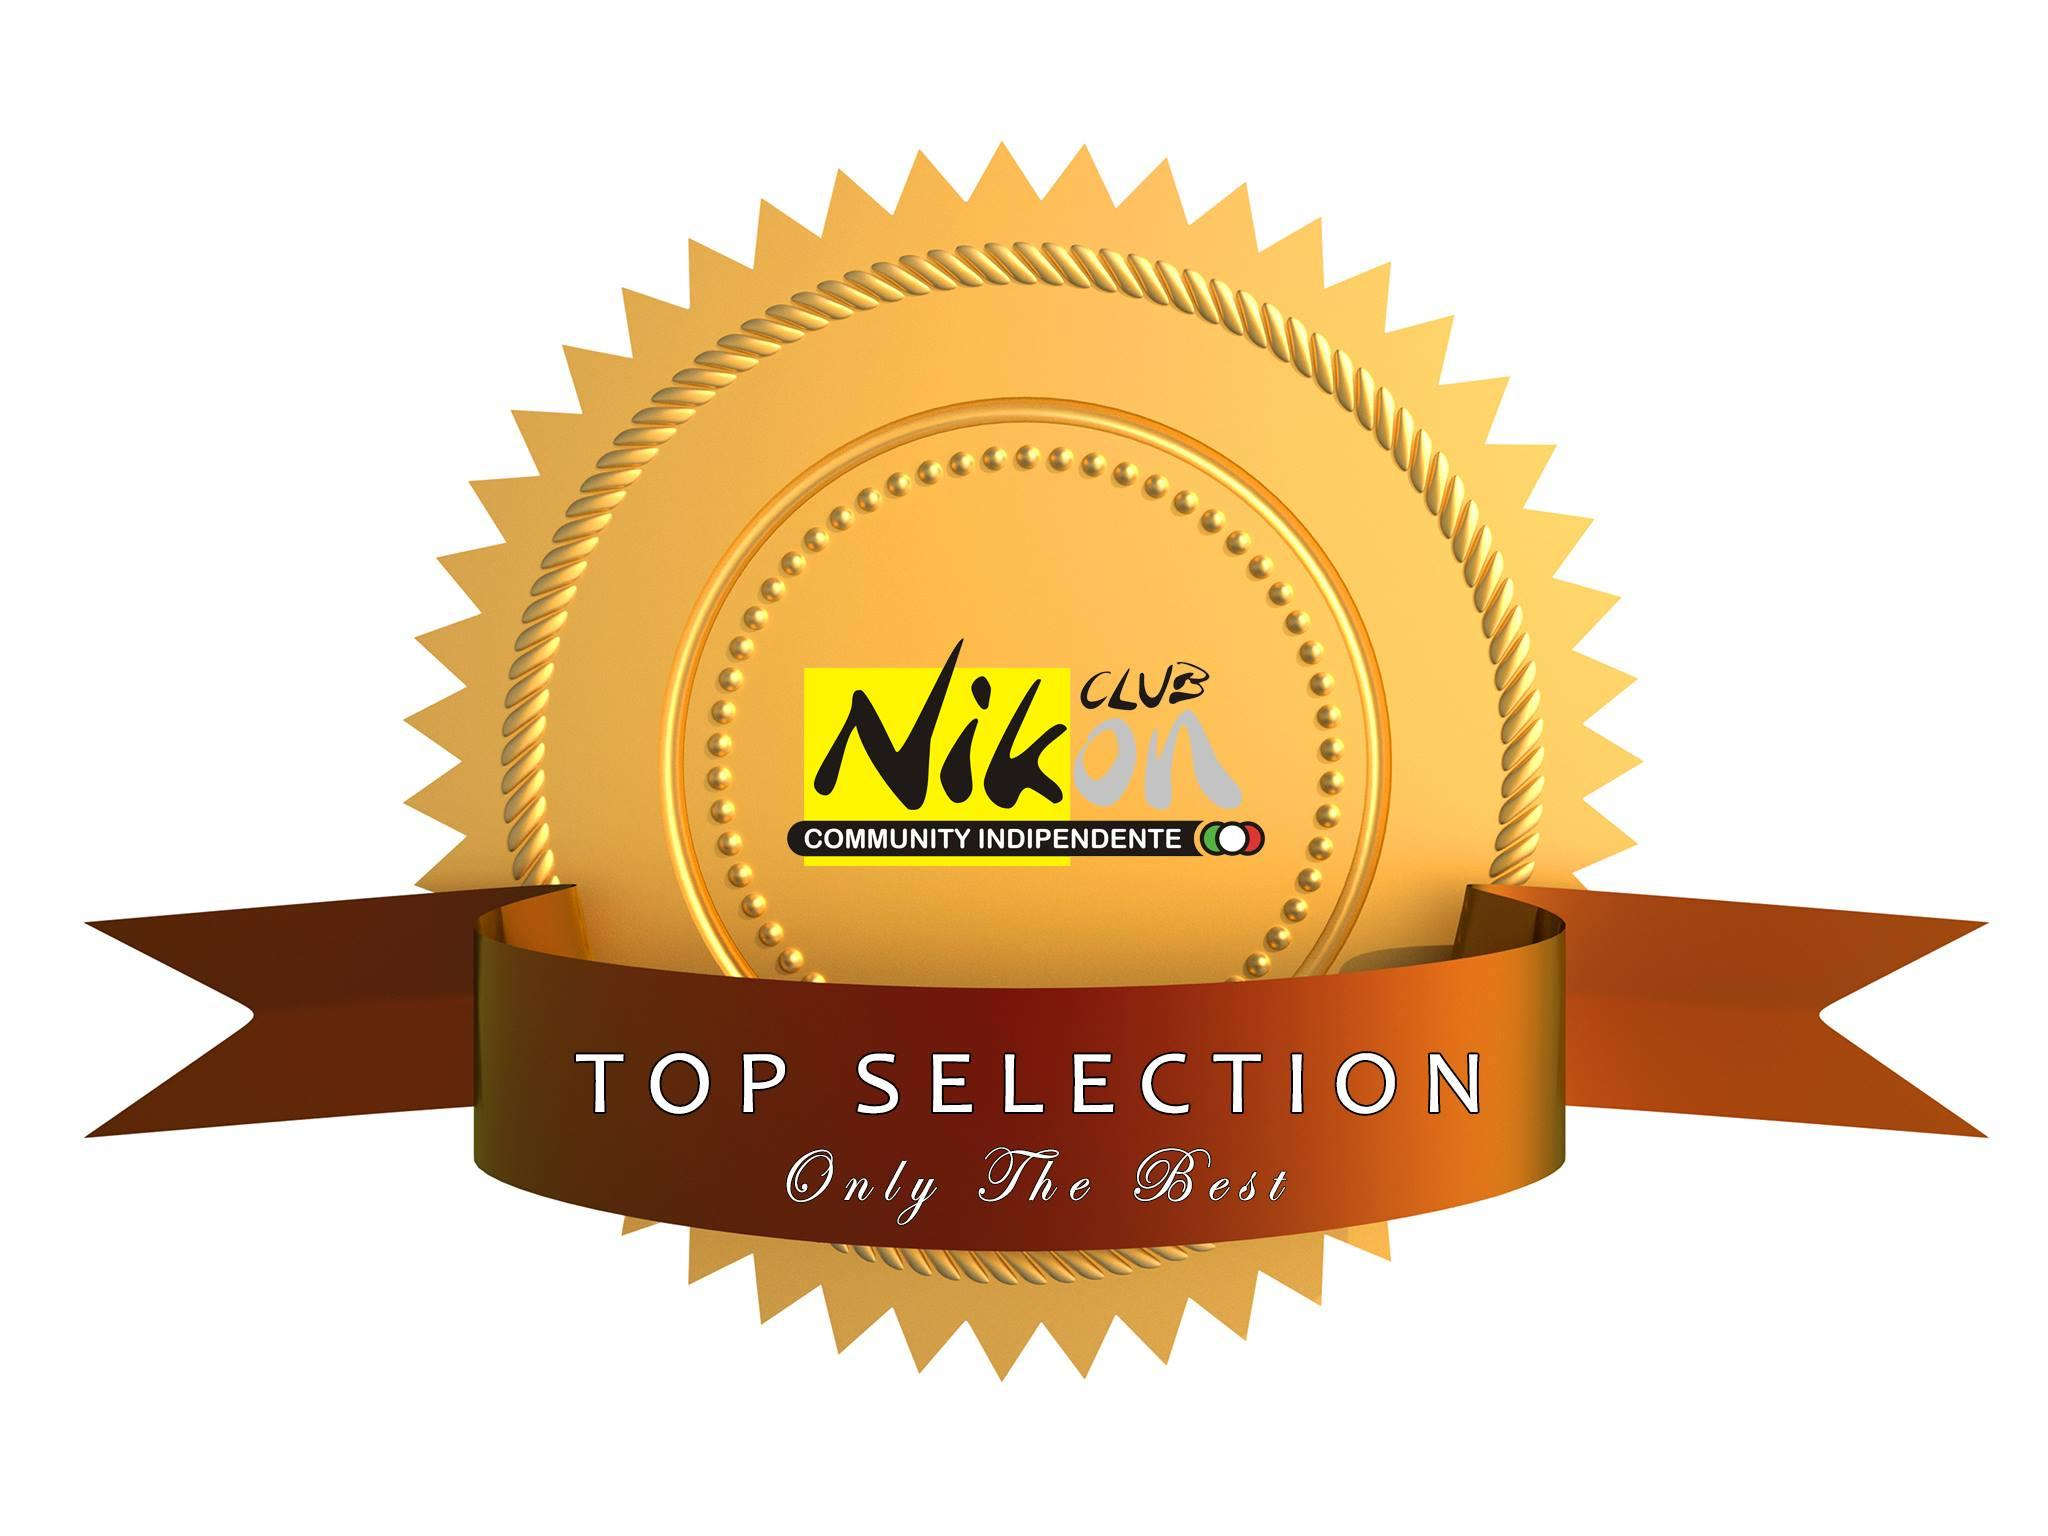 the-best-selection-nikon.jpg